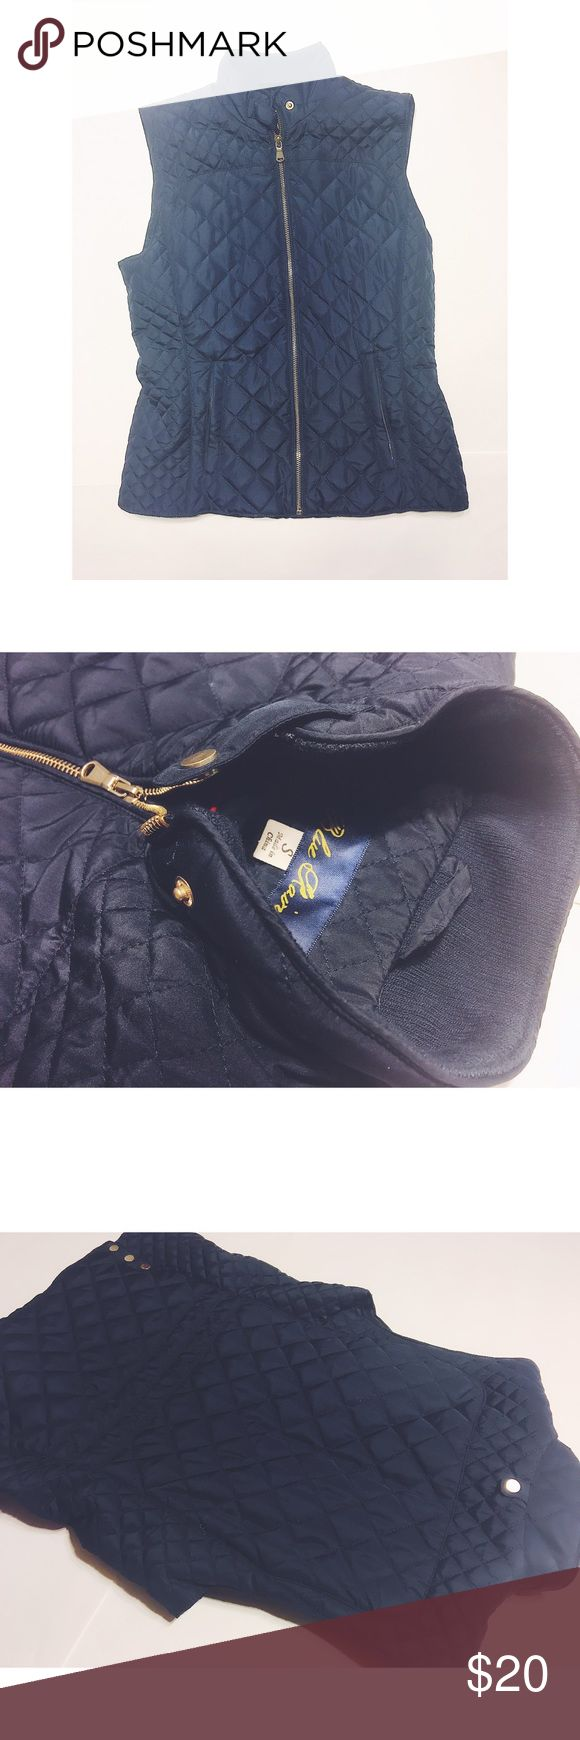 Navy Blue Vest Brand: Blue Rain (Francesca's)  •Beautiful navy blue high quality vest with gold zippers  •Buttons as neck, very comfortable, flawless Francesca's Collections Jackets & Coats Vests